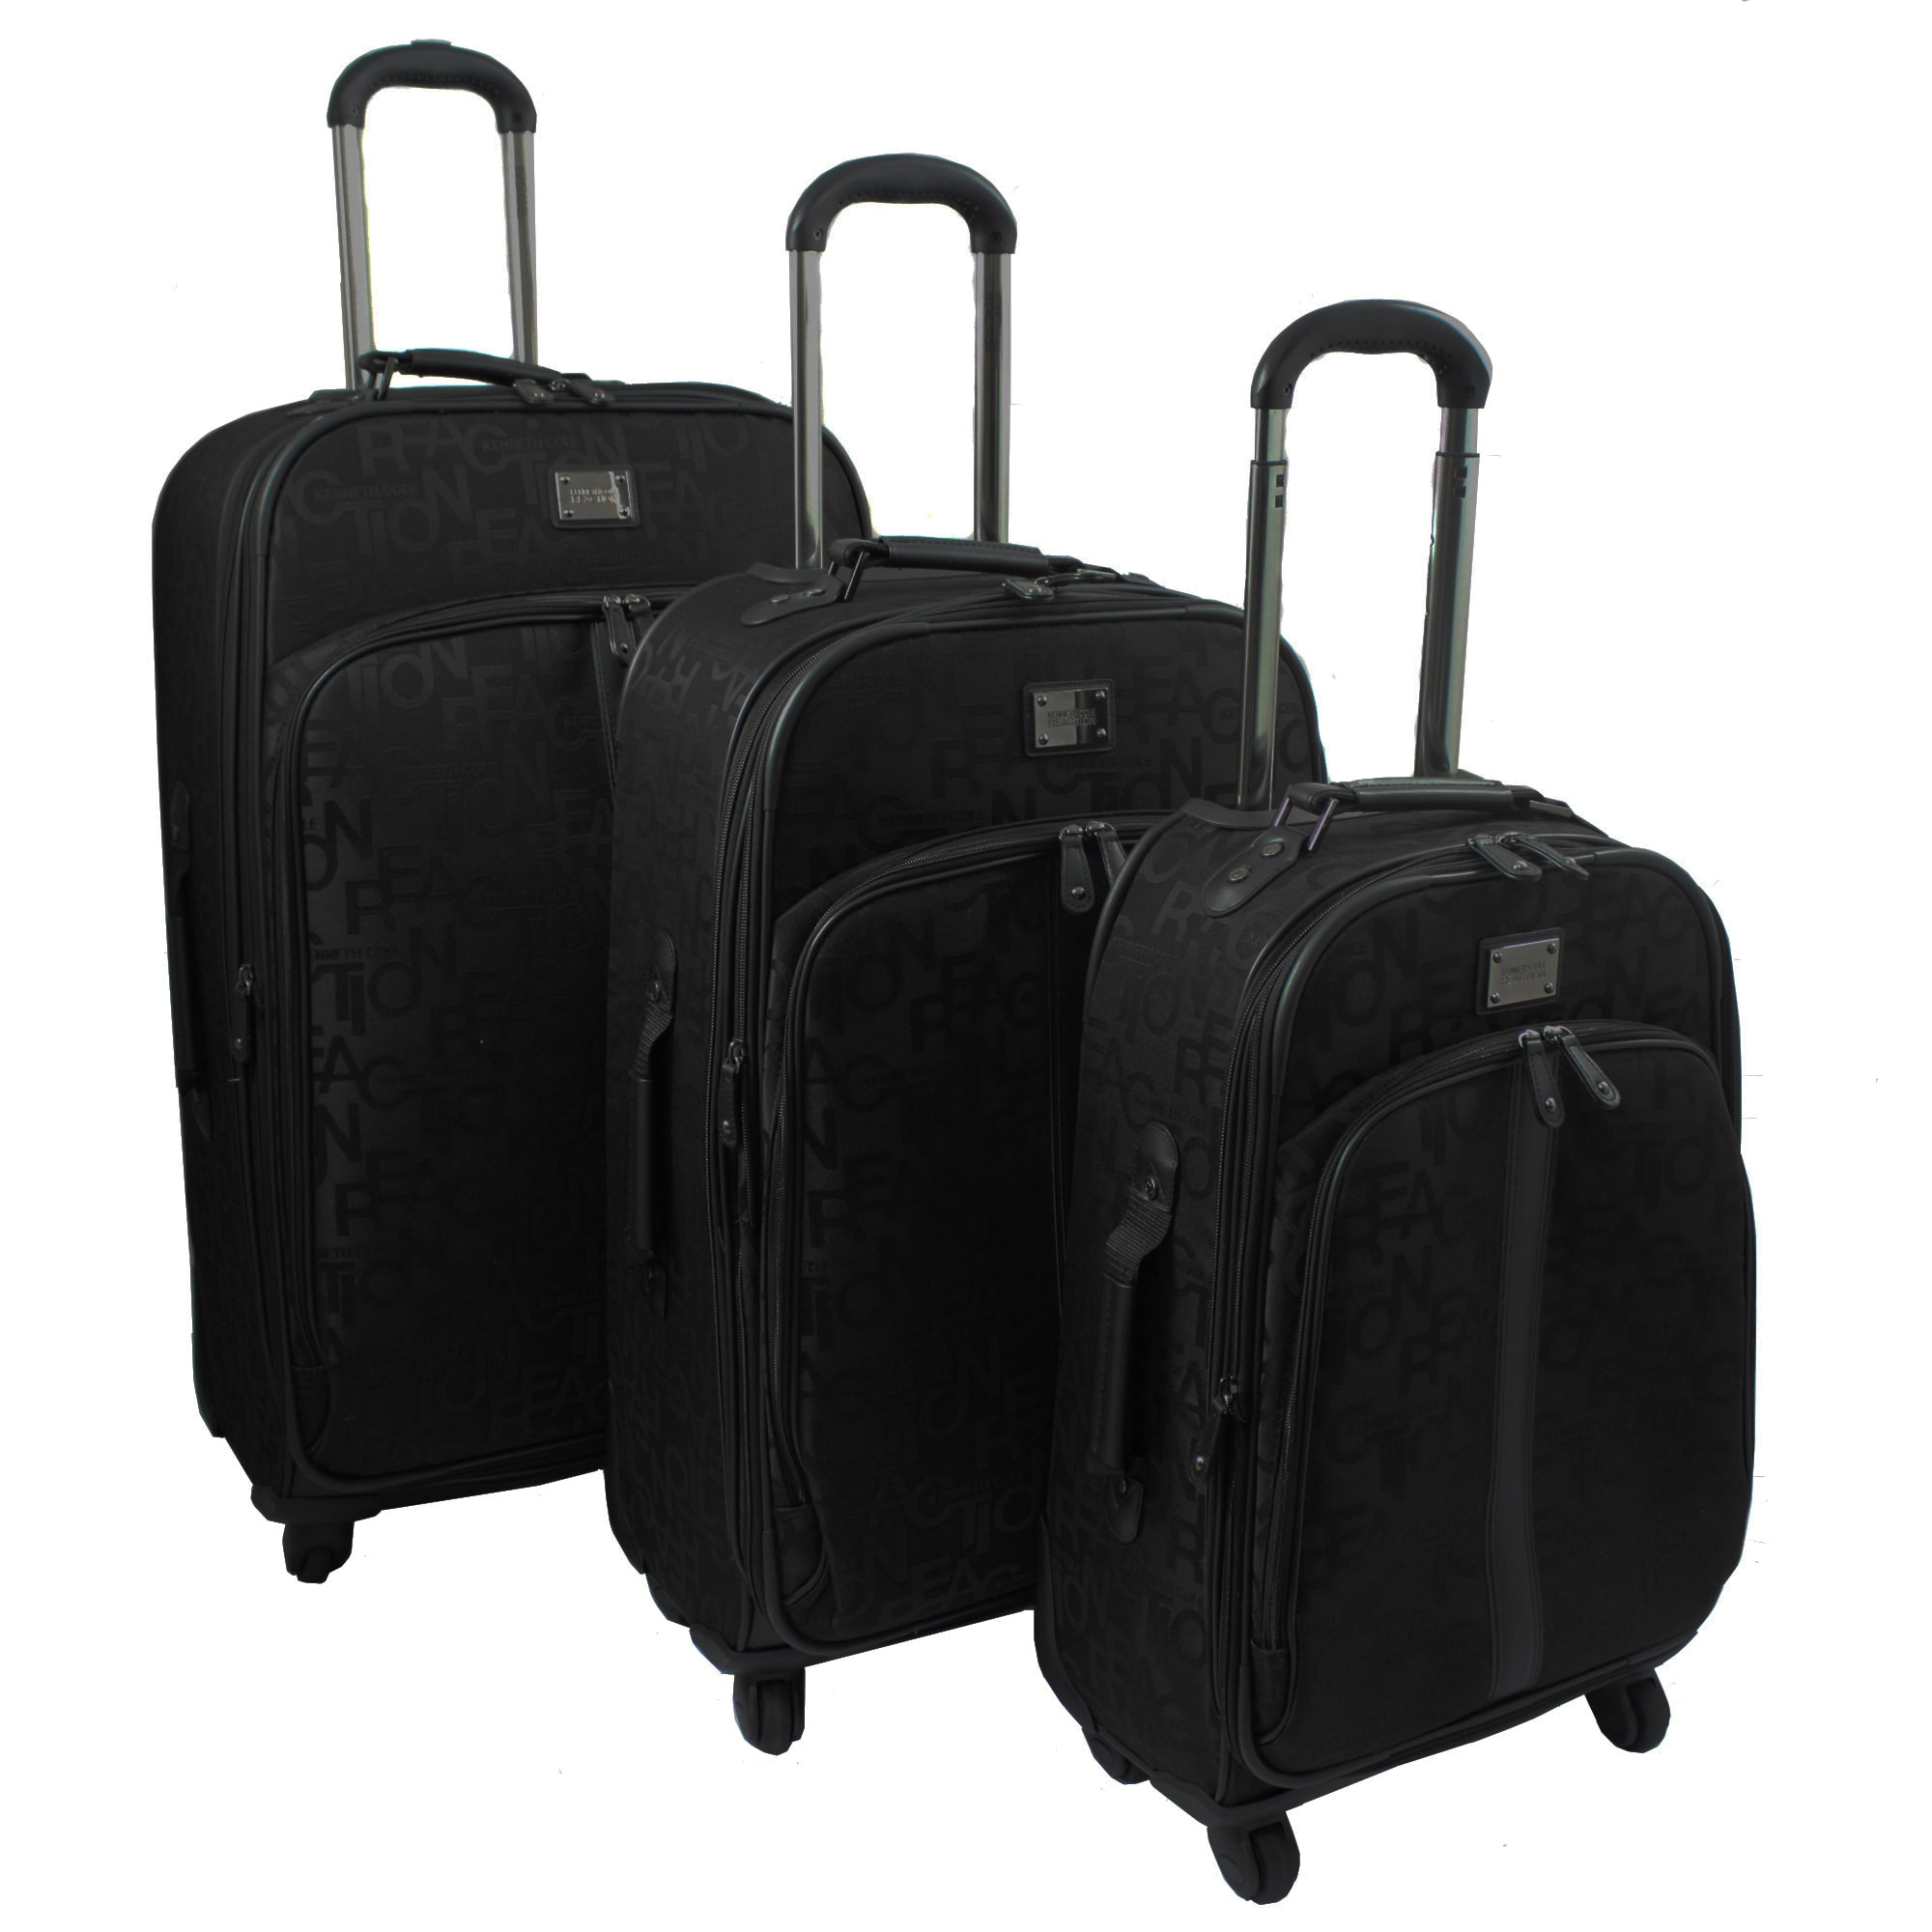 Kenneth Cole Reaction 'Taking Flight' Black 3-piece Expandable Spinner Luggage Set